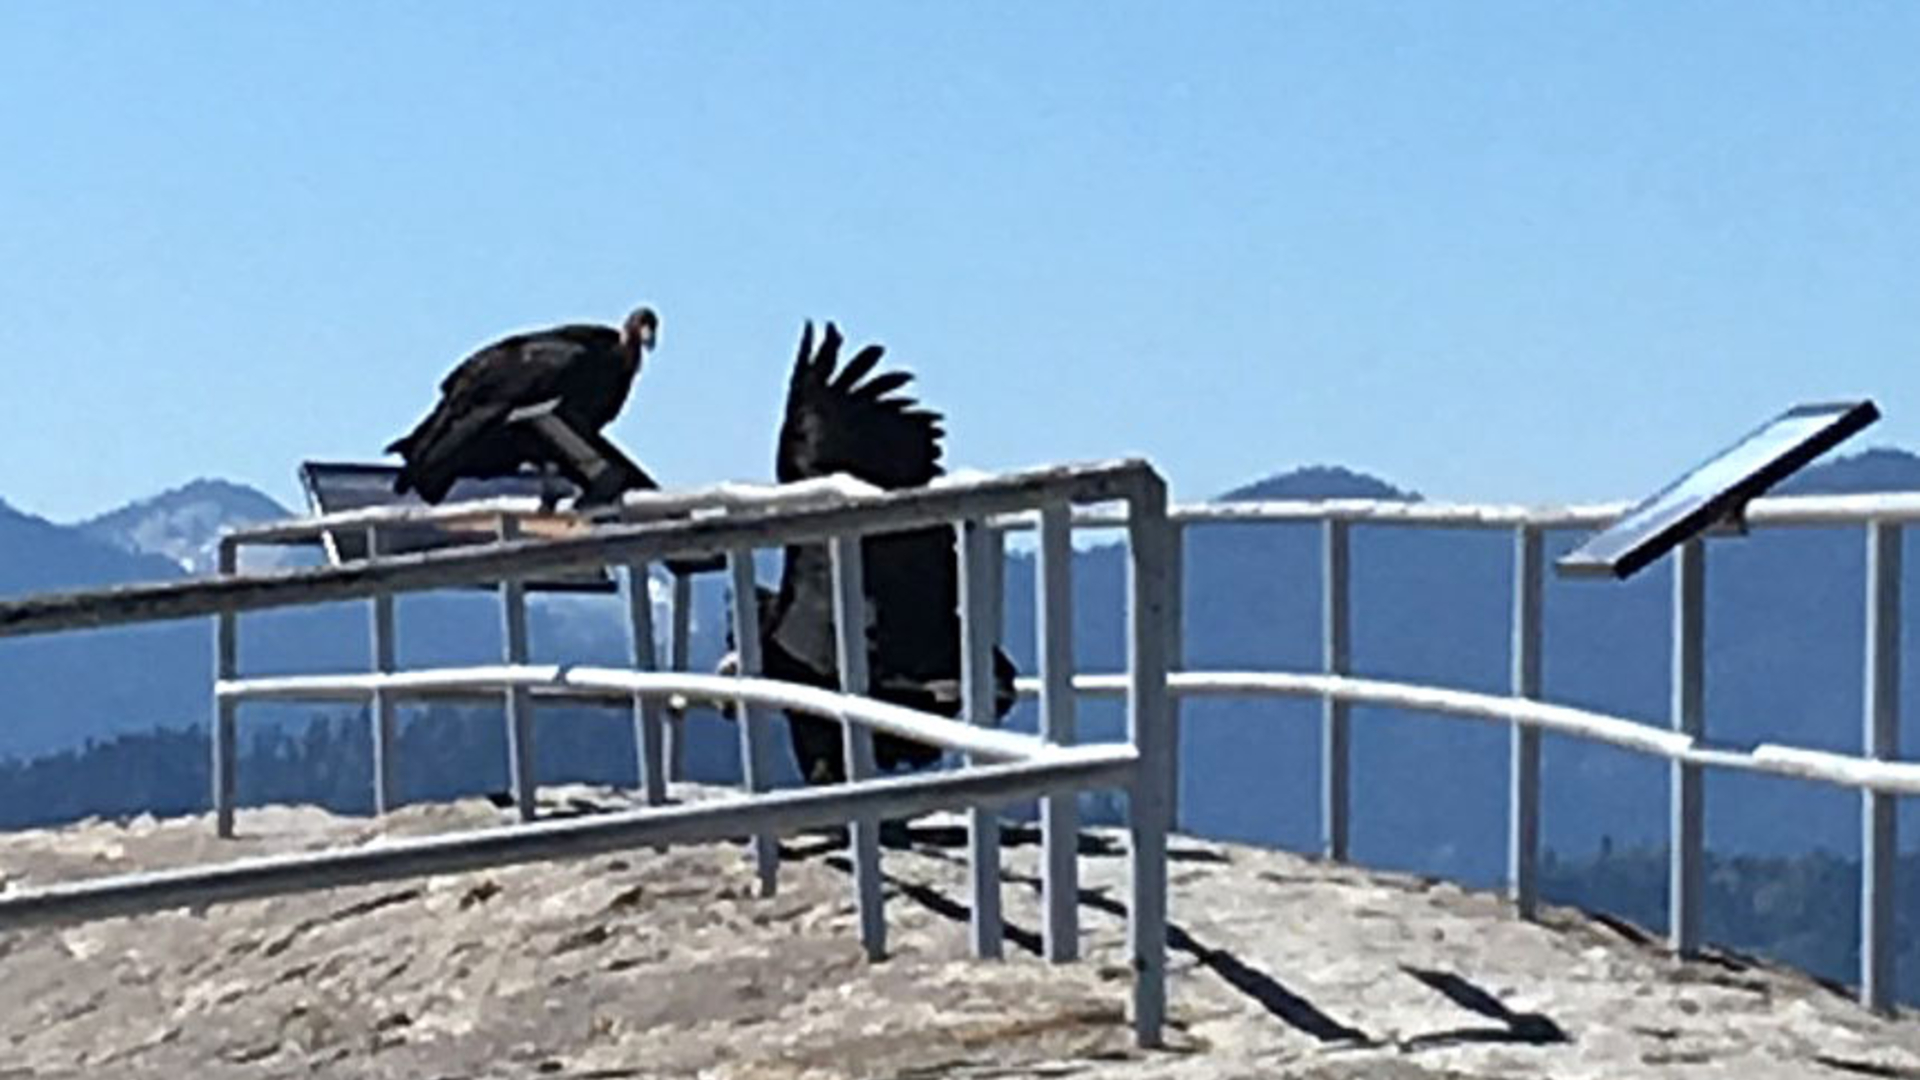 A pair of California condors are seen atop Moro Rock in Sequoia National Park in May 2020. (Wilson Garver / National Park Service)